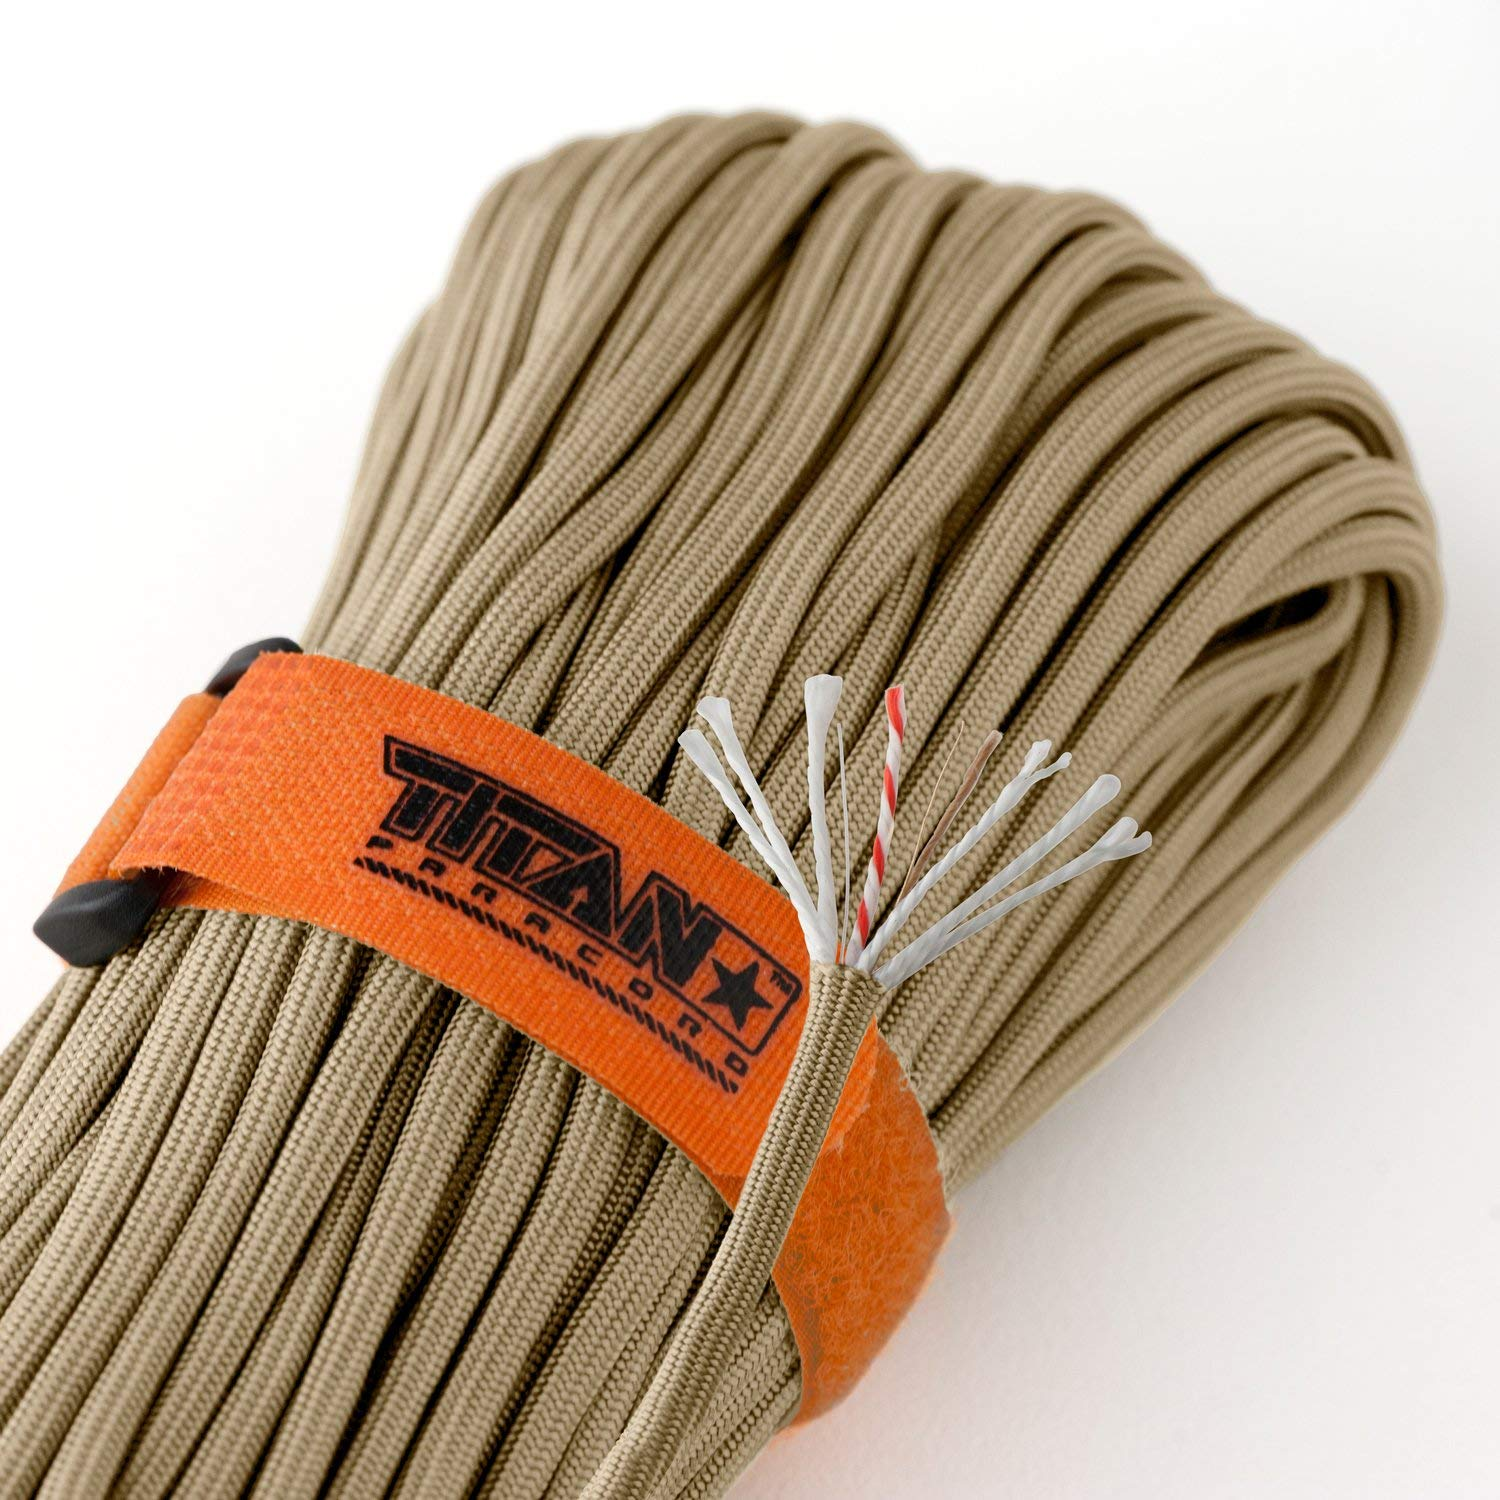 Titan SurvivorCord | Desert TAN | 103 Feet | Patented Military Type III 550 Paracord/Parachute Cord (3/16'' Diameter) with Integrated Fishing Line, Fire-Starter, and Utility Wire.